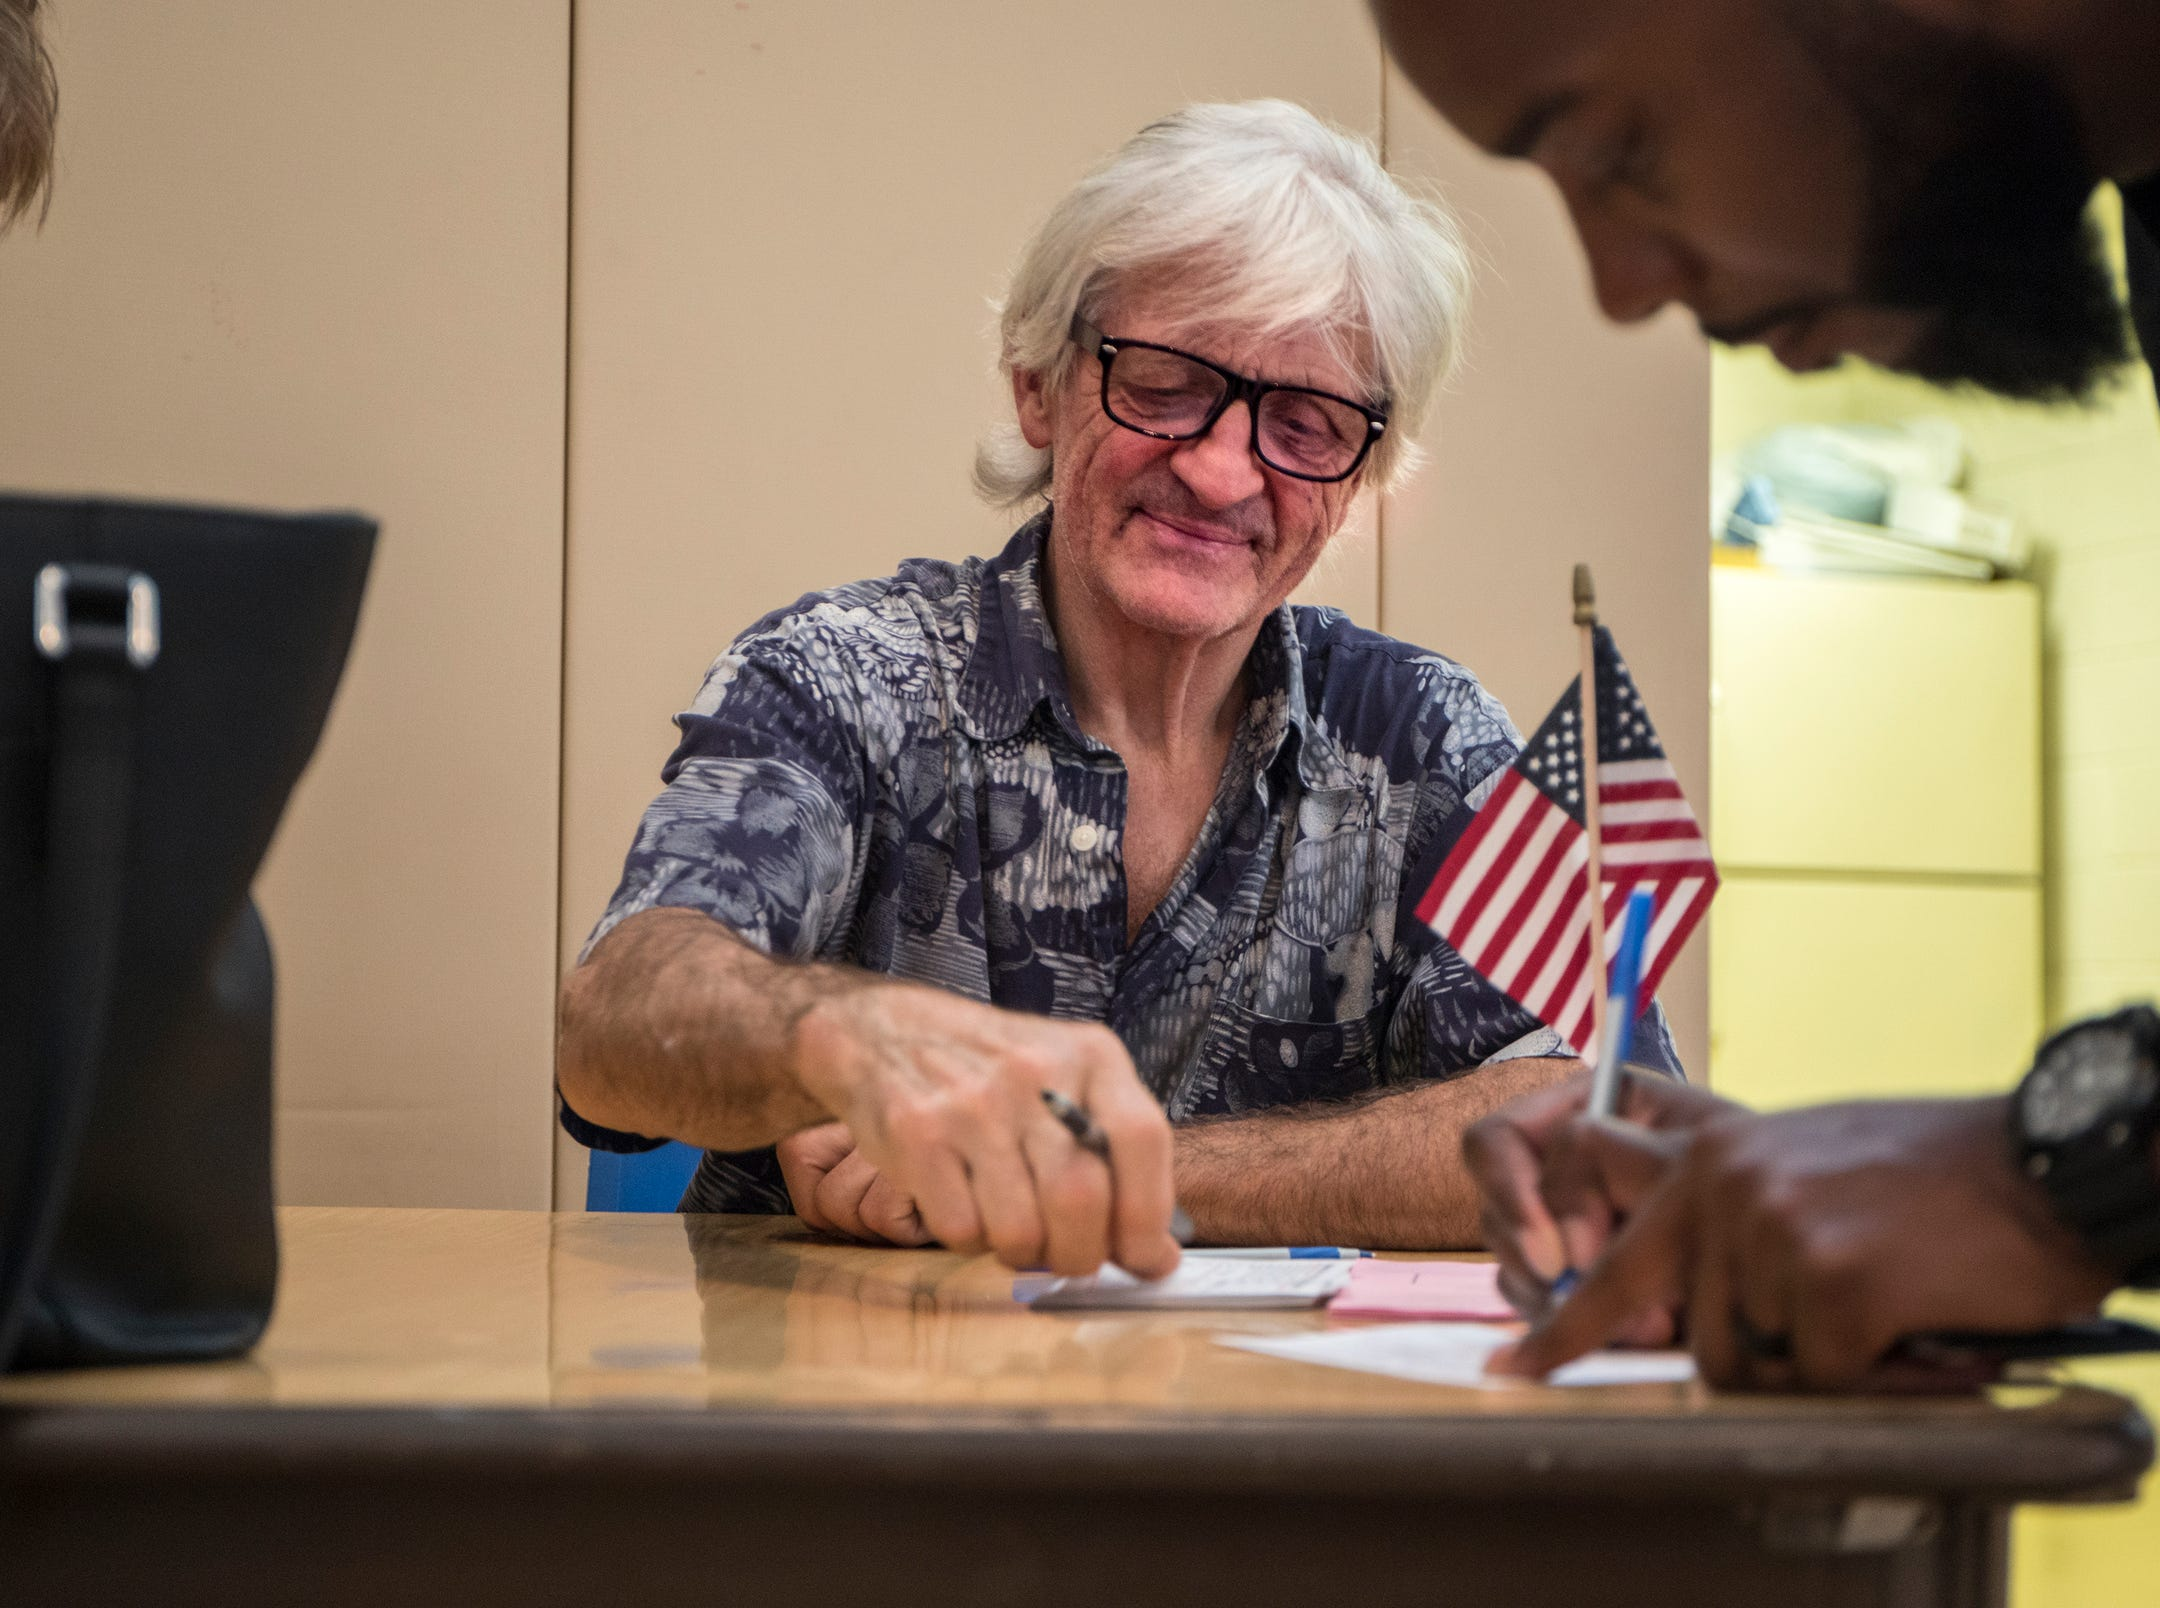 Ray DiMeo, 67 of Mt. Clemens volunteers as an inspector at the Wilson Gymnasium polling location in Mt. Clemens, Mich., Tuesday, August 7, 2018.